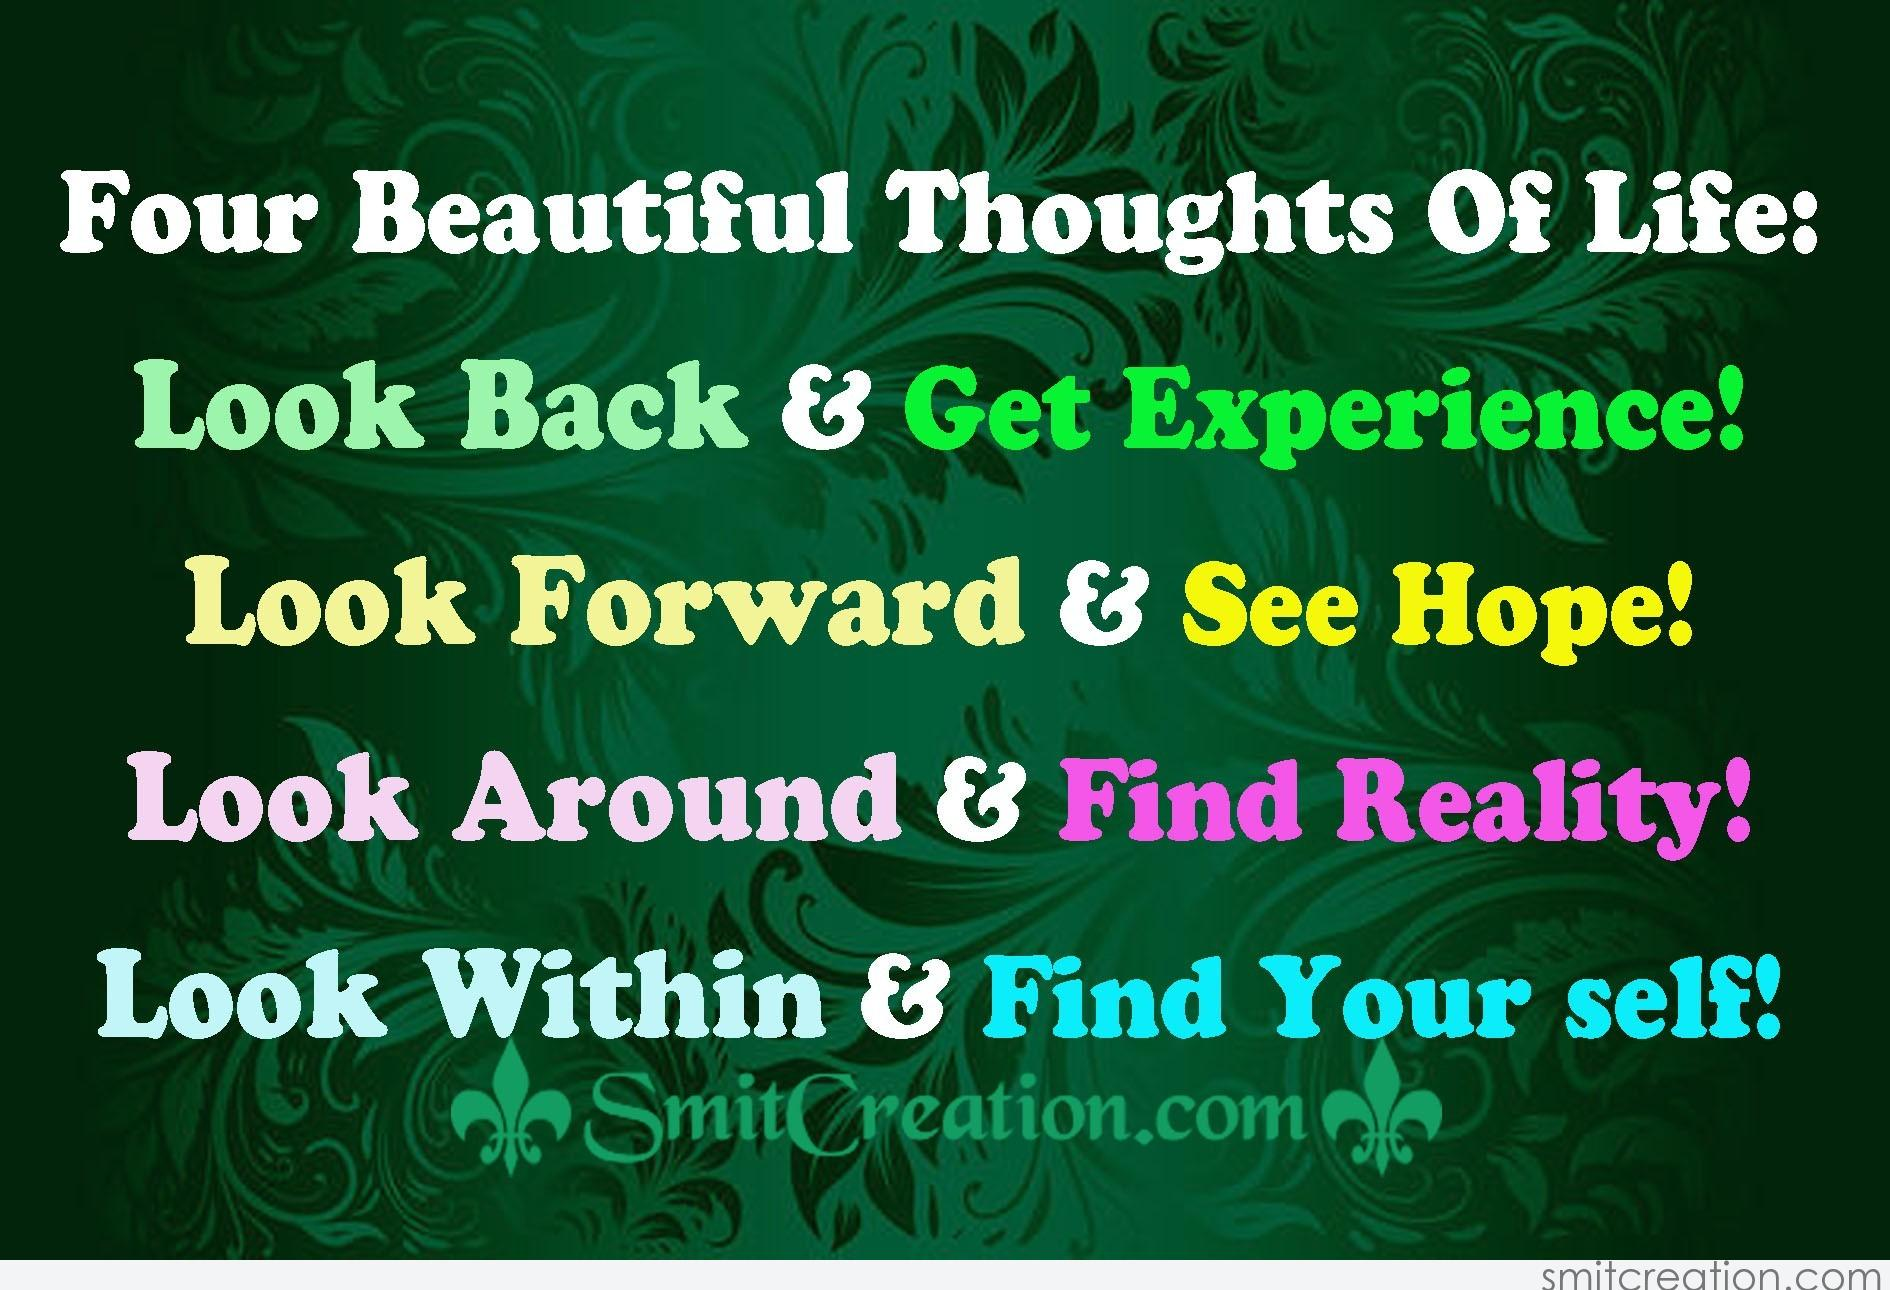 Four Beautiful Thoughts Of Life - SmitCreation.com